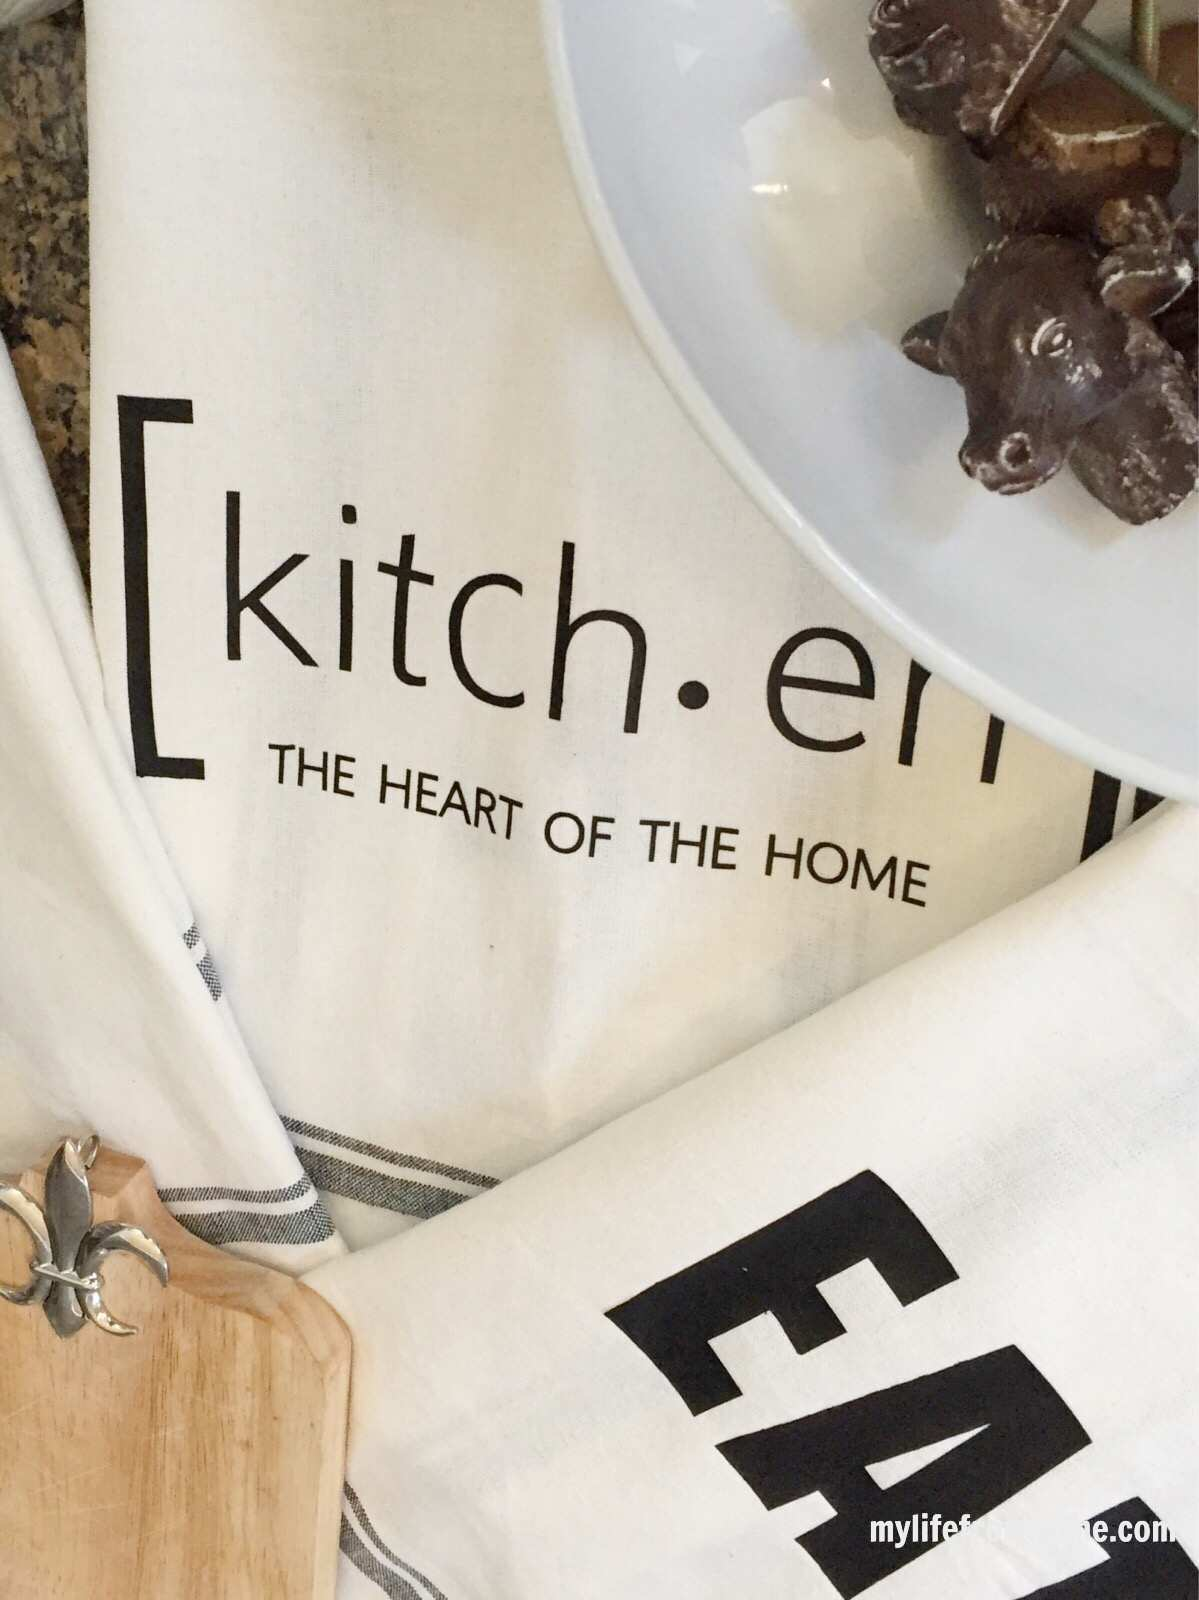 Vinyl Images on Kitchen Towels: Tutorial using a Silhouette Cameo by www.mylifefromhome.com